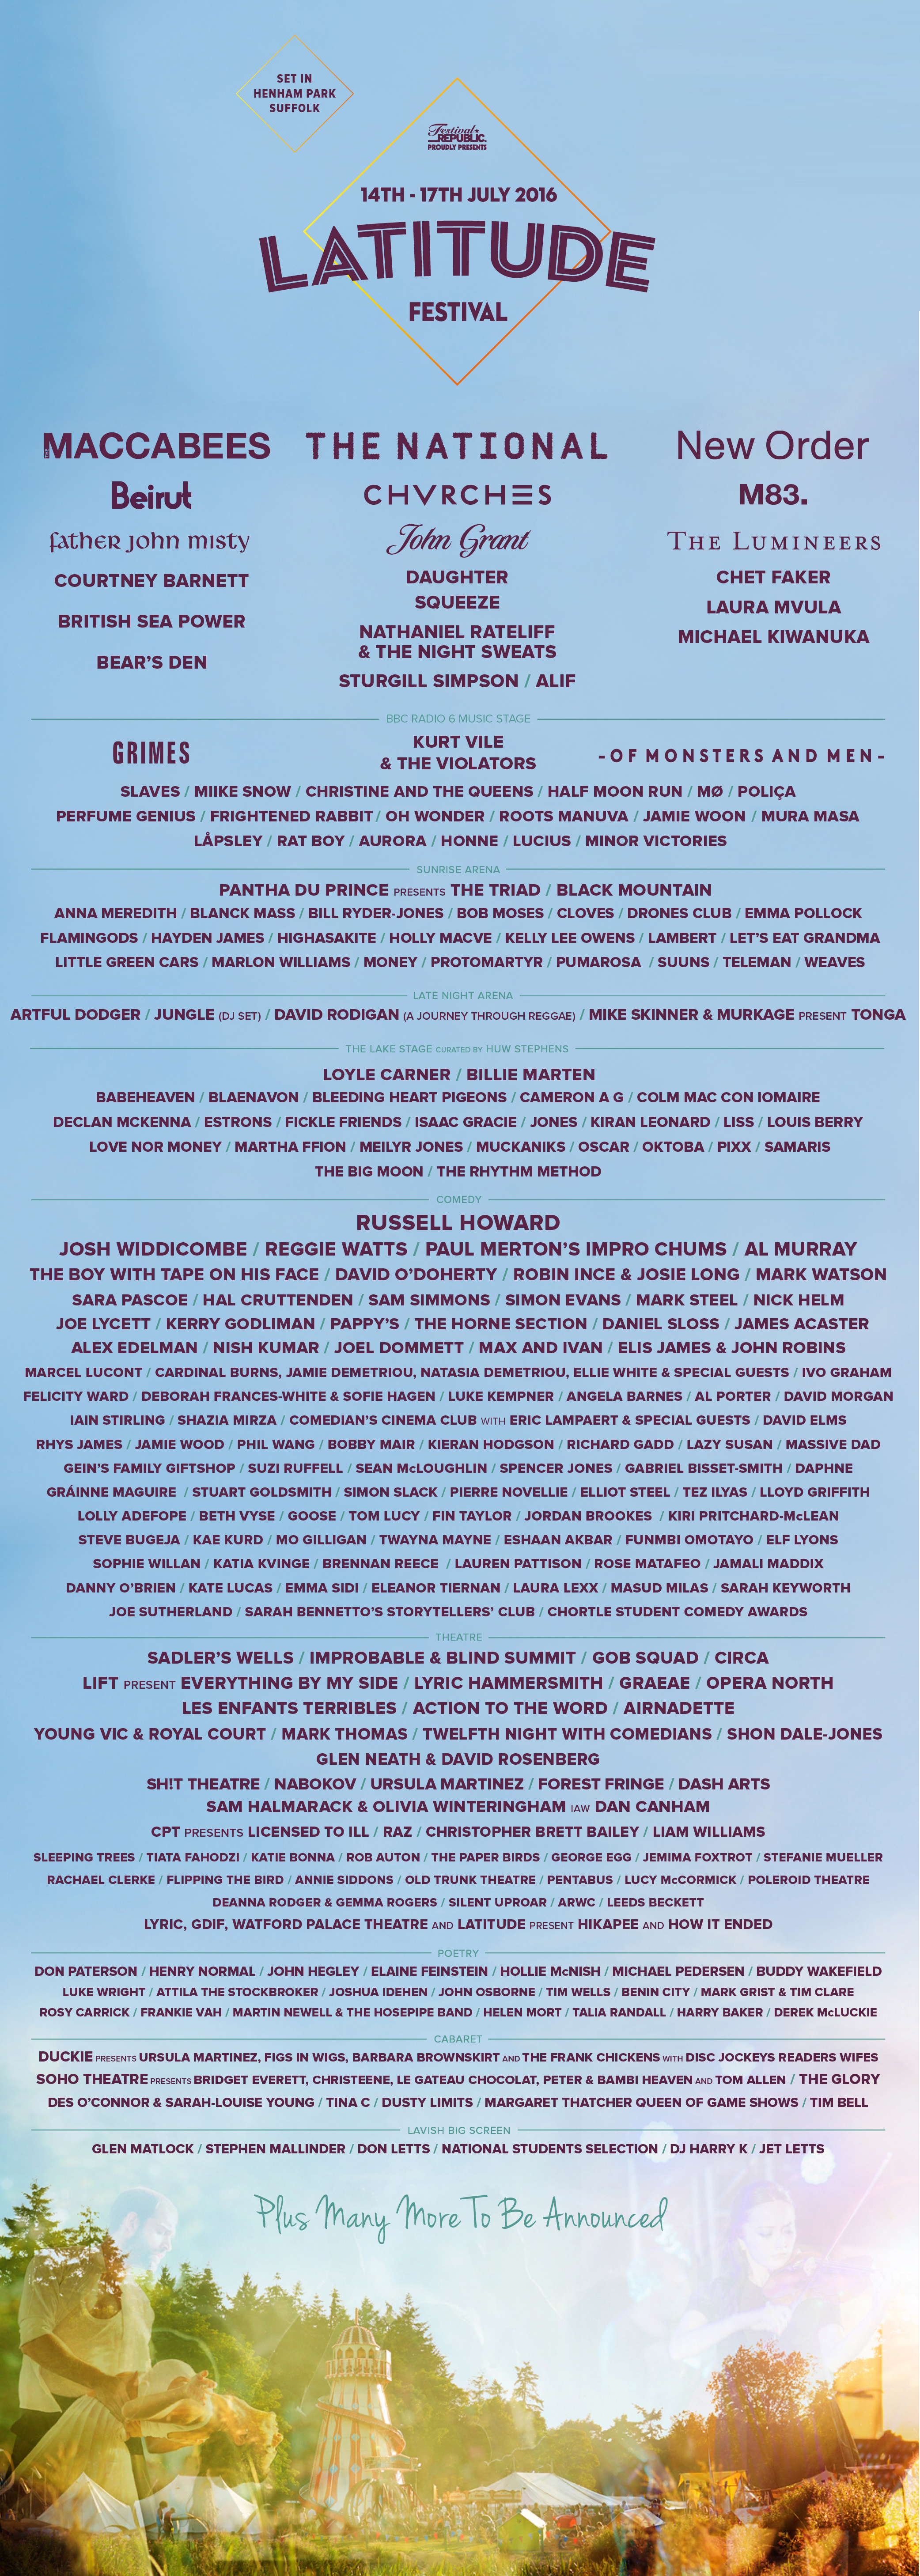 NEWS: Latitude Festival announces its Lake Stage line-up